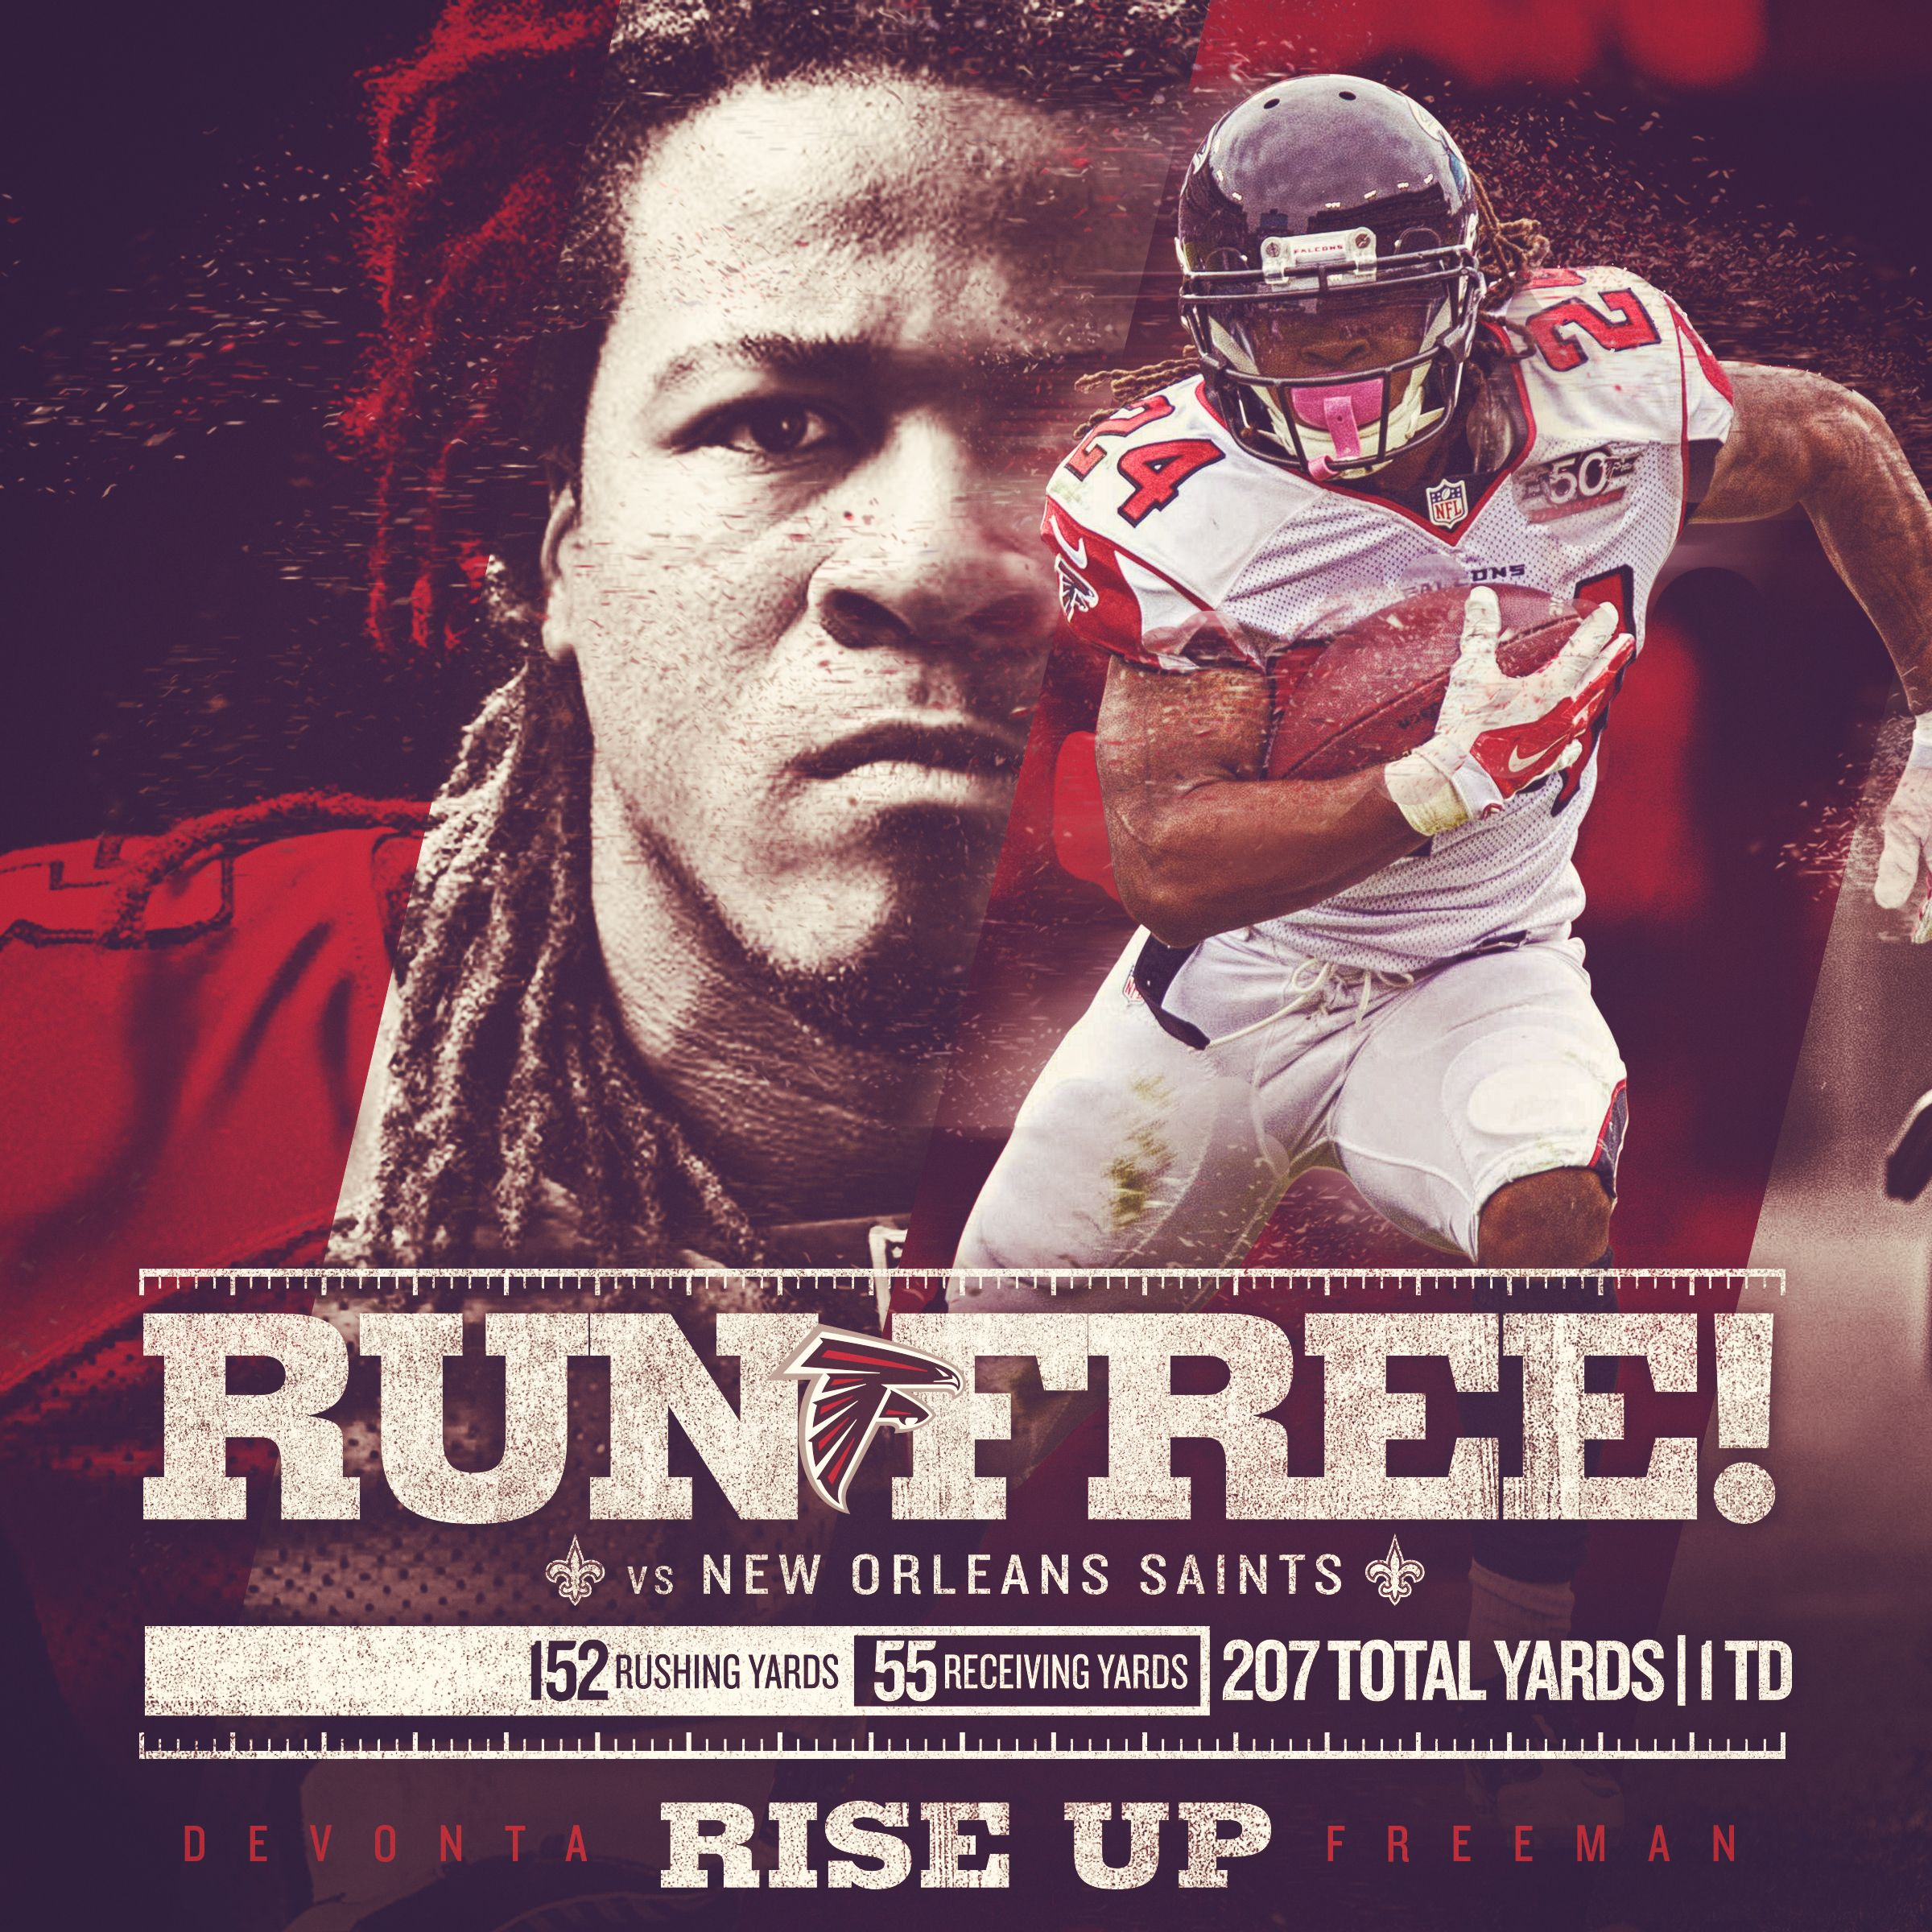 Riseup Atlantafalcons Social Media Concept For The Atlanta Falcons With Images Atlanta Falcons Memes Atlanta Falcons Atlanta Falcons Football